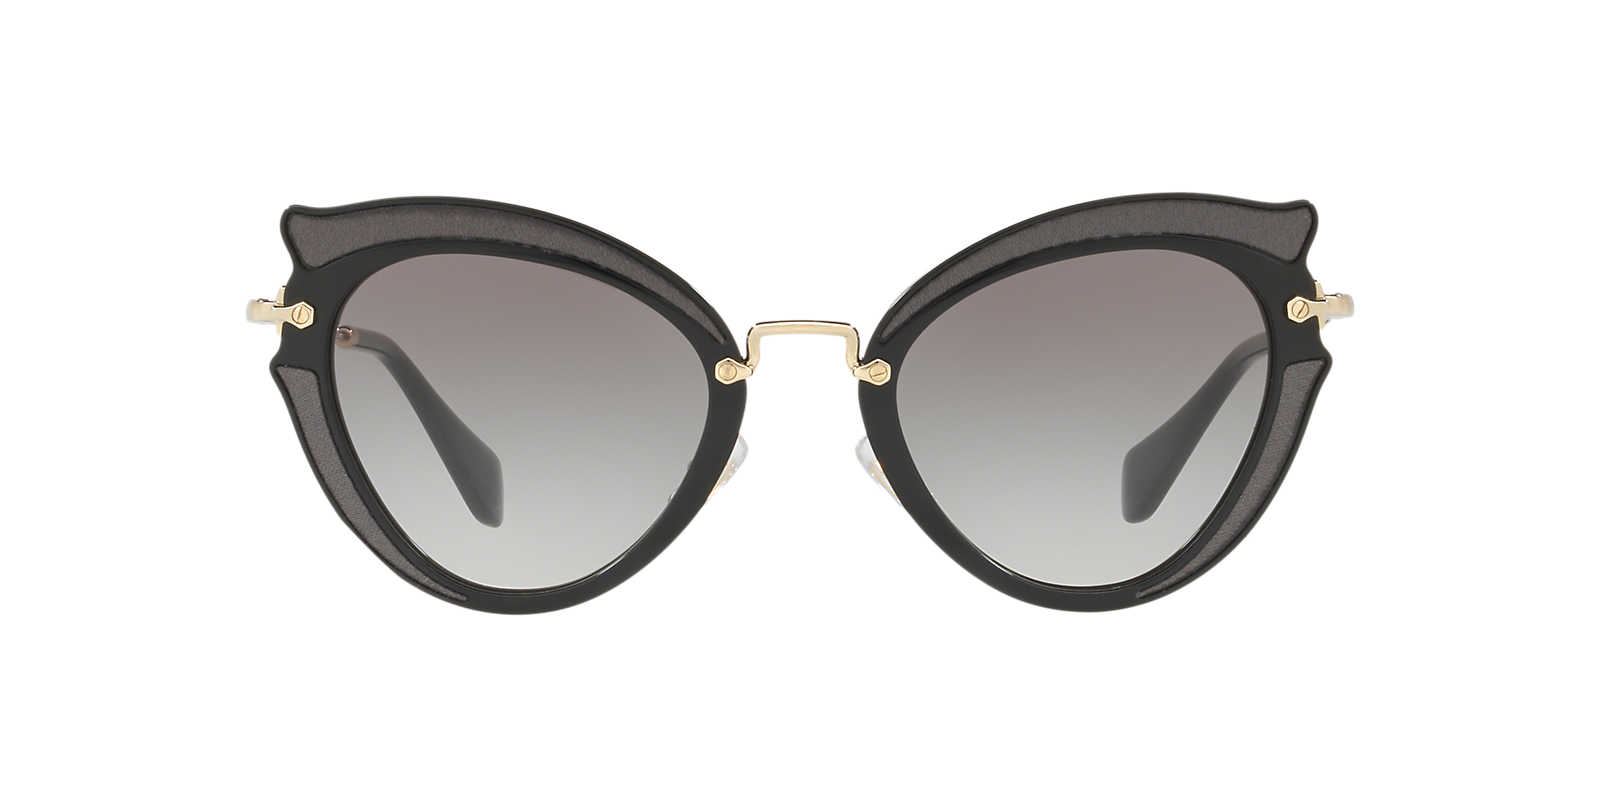 Miu Miu Glasses Stockists London